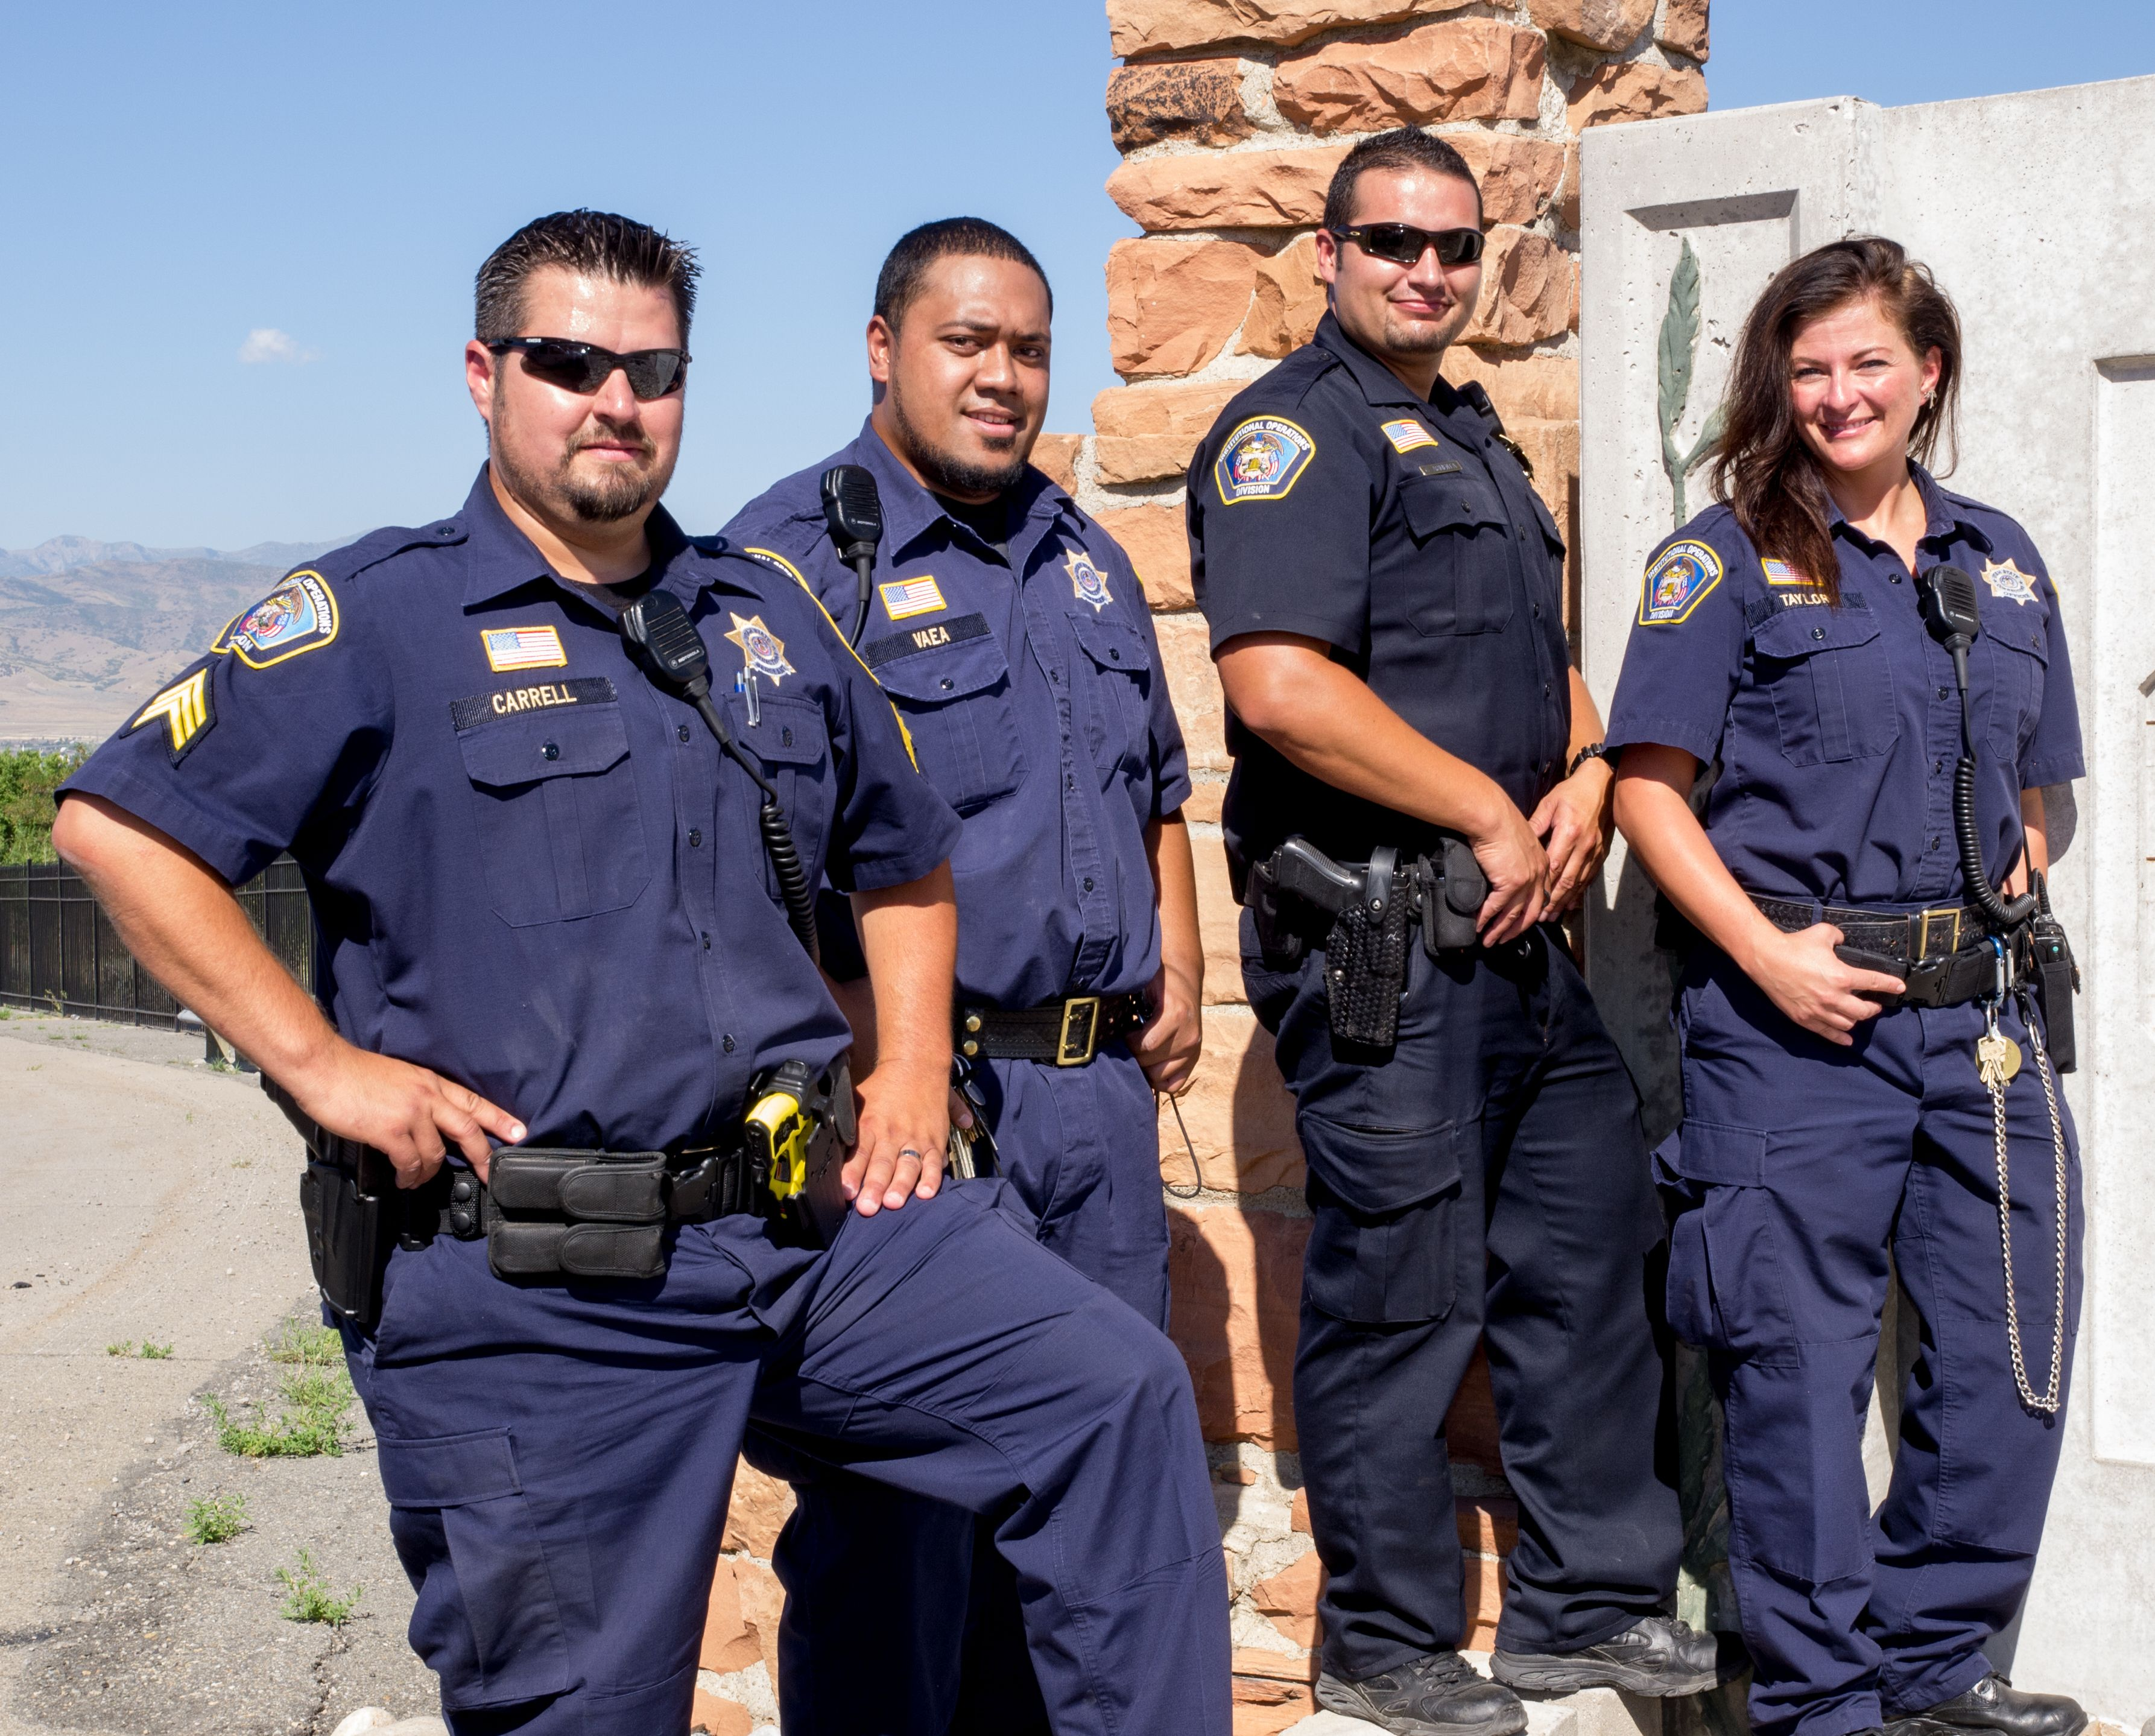 We're recruiting for new correctional officers to work at the Utah ...